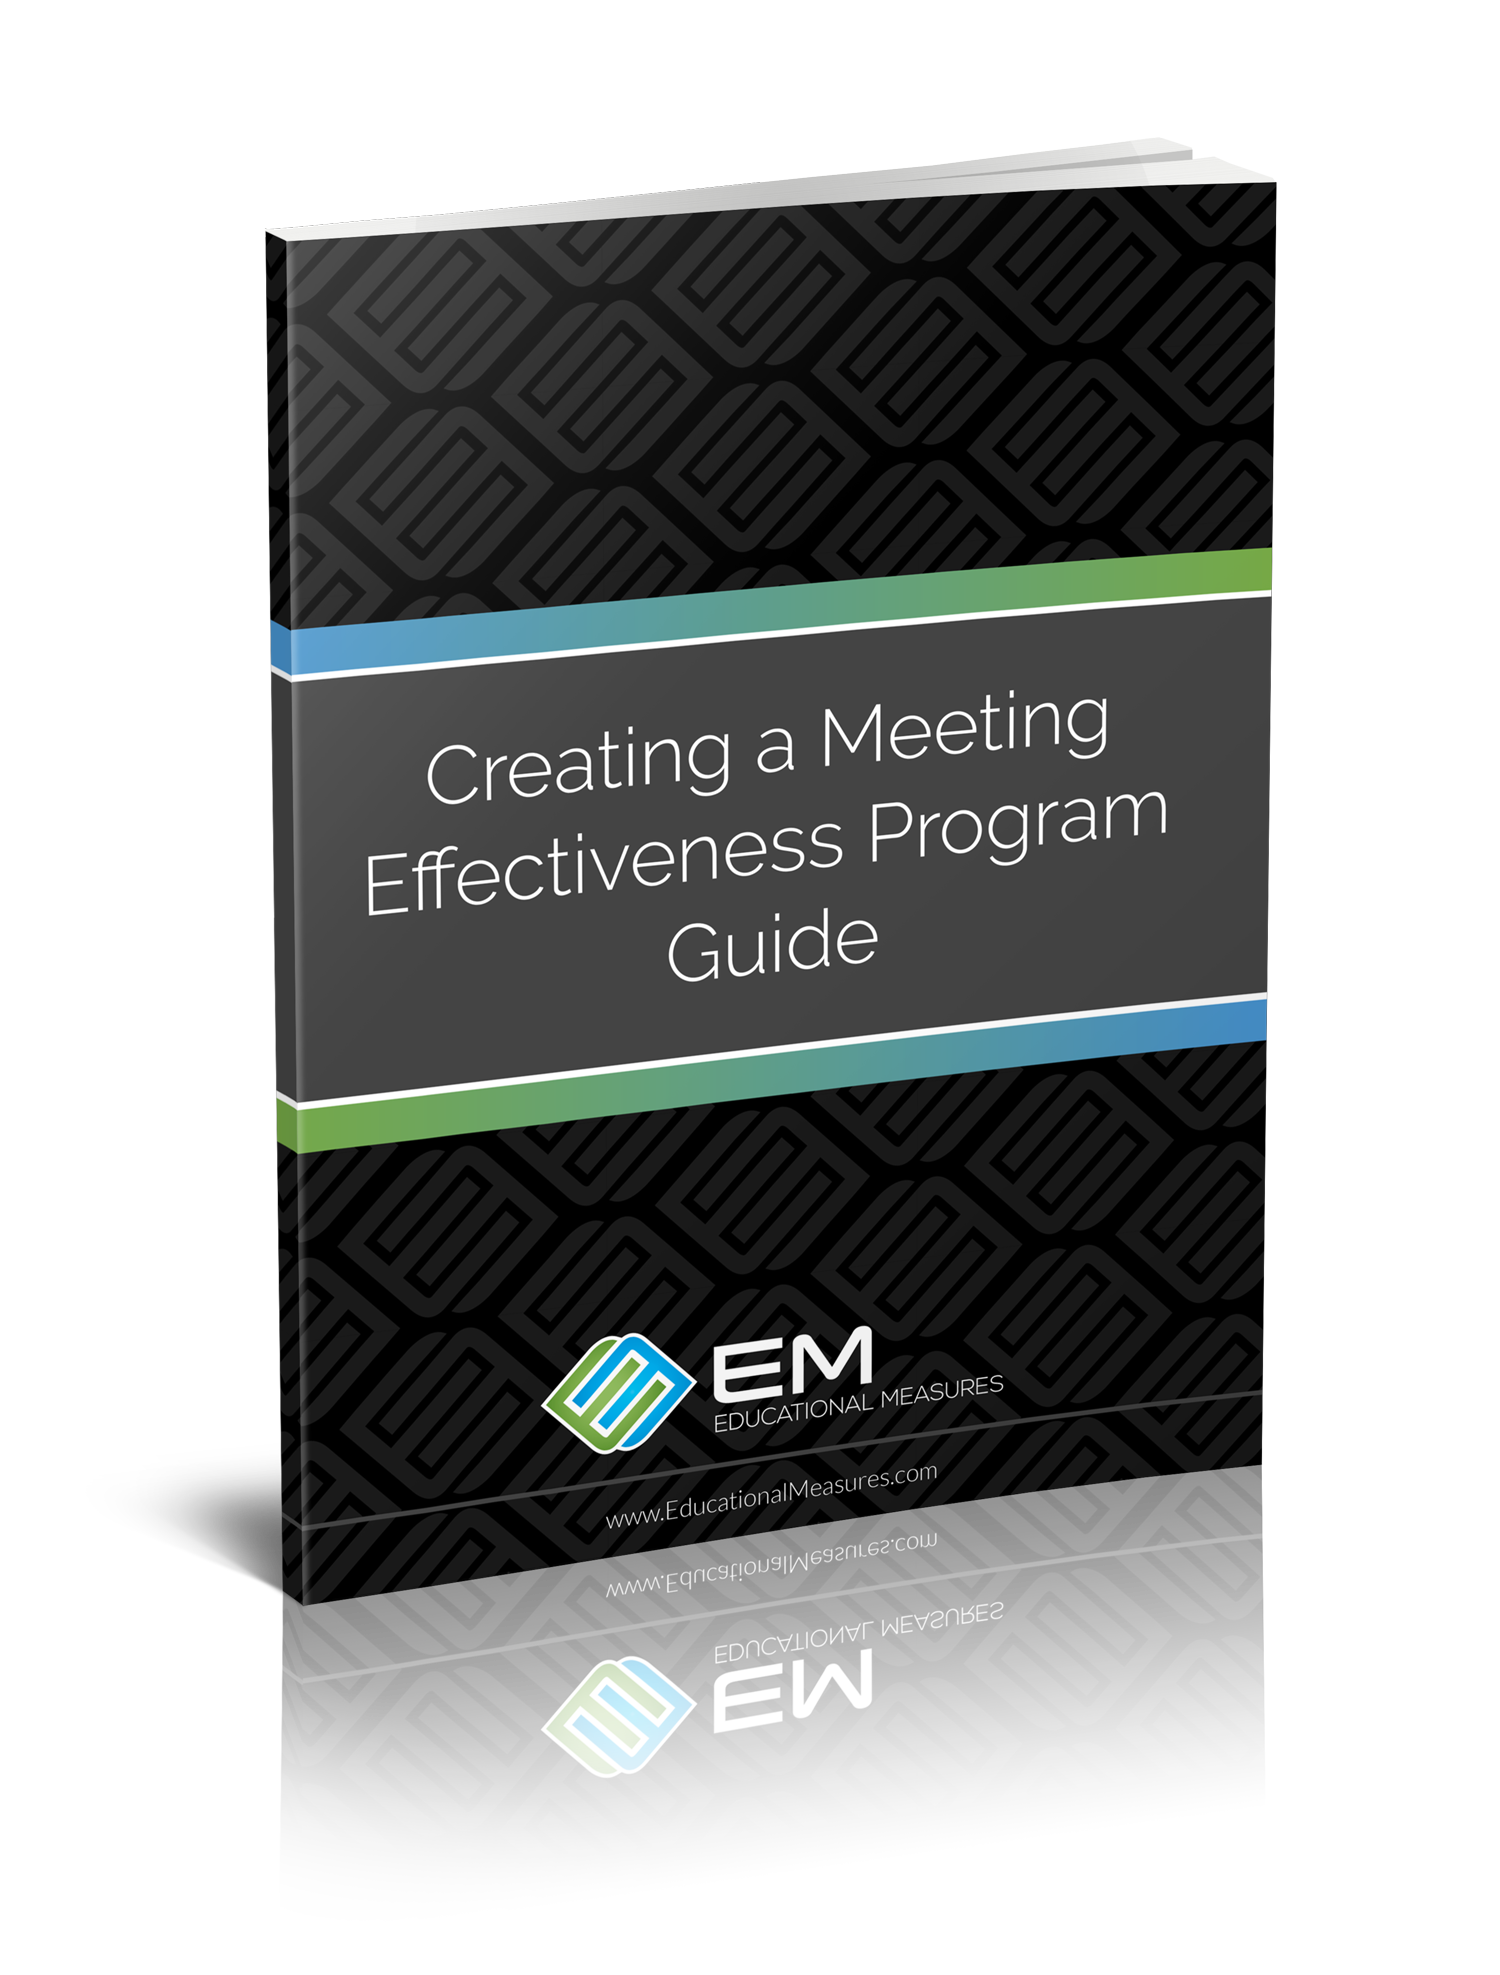 Creating a Meeting Effectiveness Program Guide